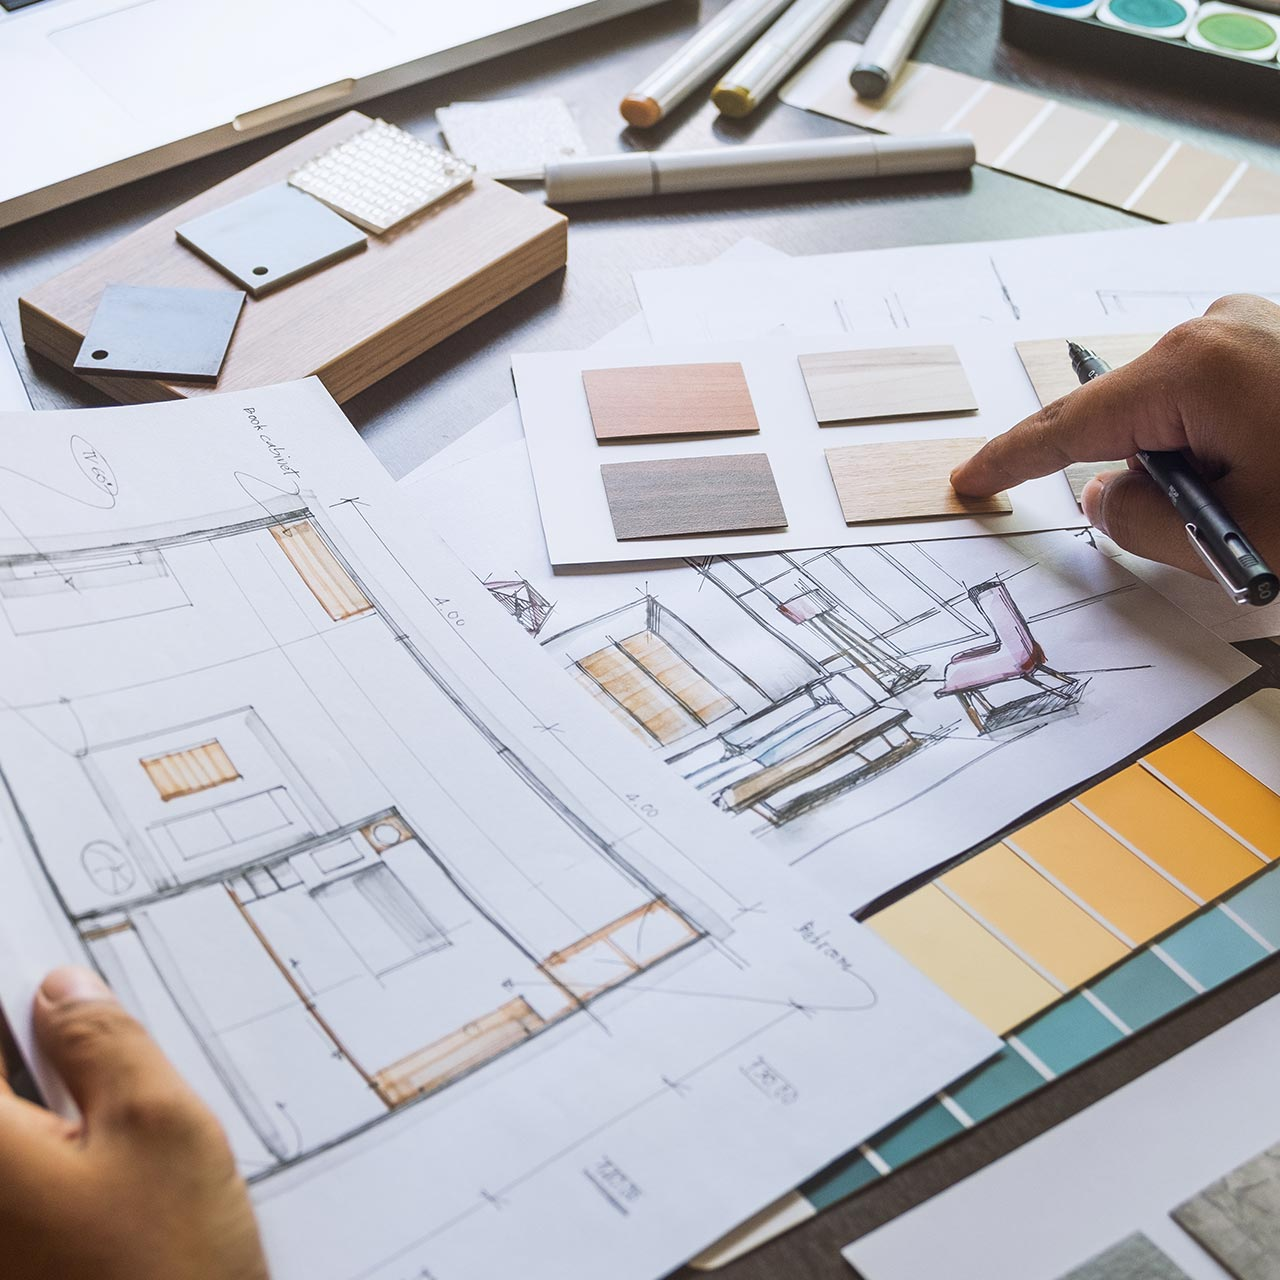 10 Questions To Ask An Interior Designer | Design Cafe